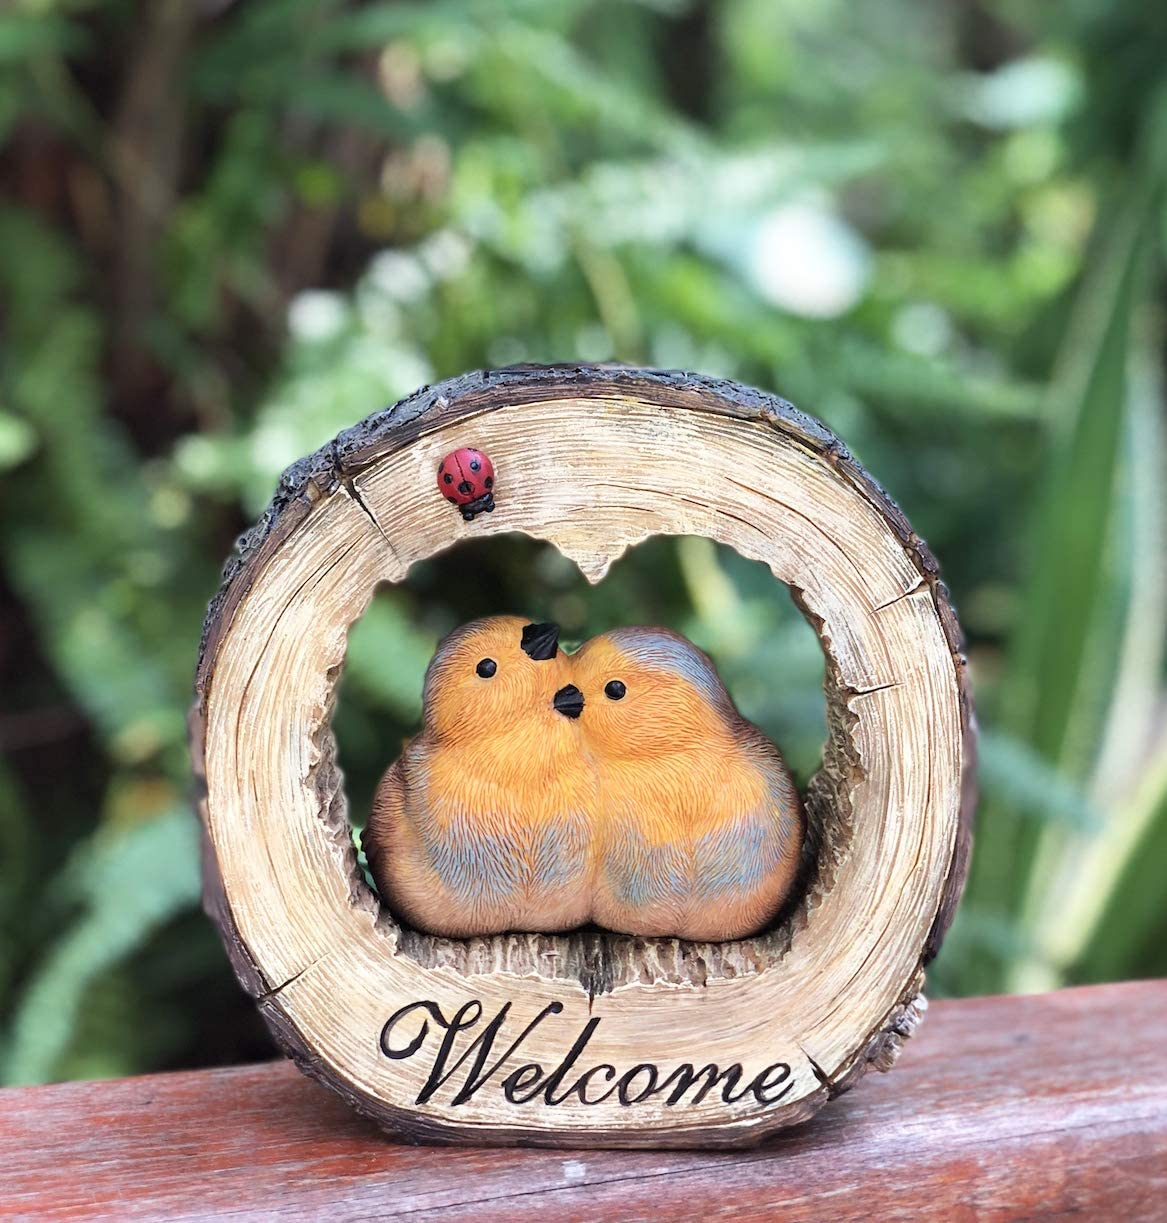 Solar Powered Love Birds and Ladybug Welcome trust Sign Outdo